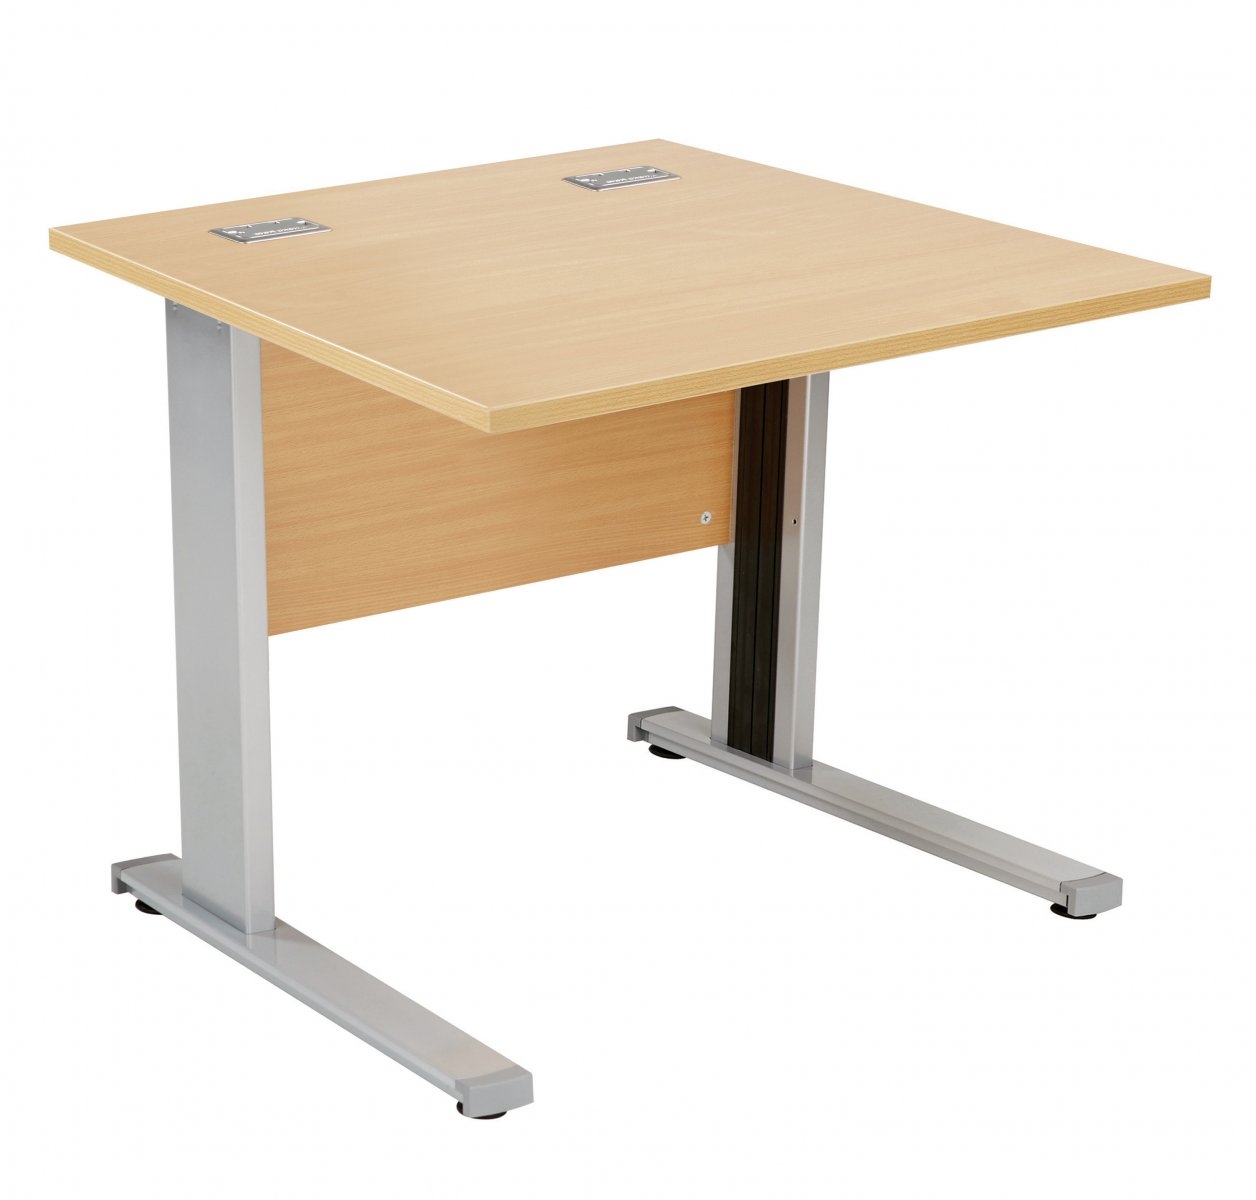 Fraction Deluxe Square 80 Desk - Nova Oak